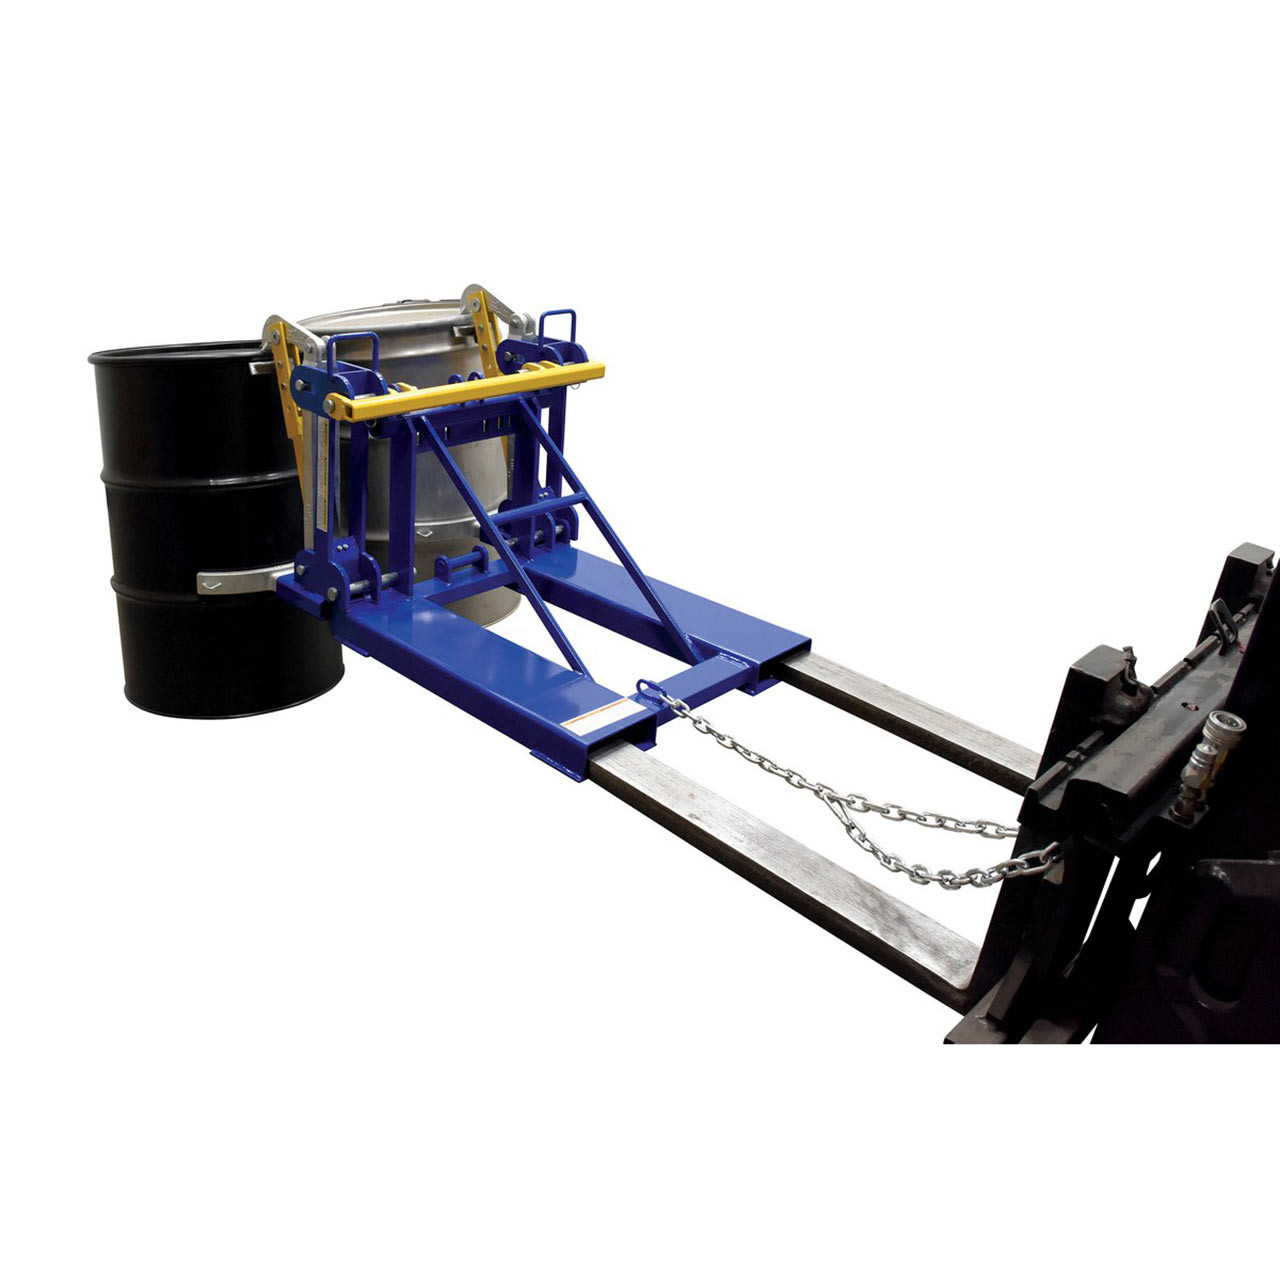 Automatic Drum Lifter Rear View With Drums